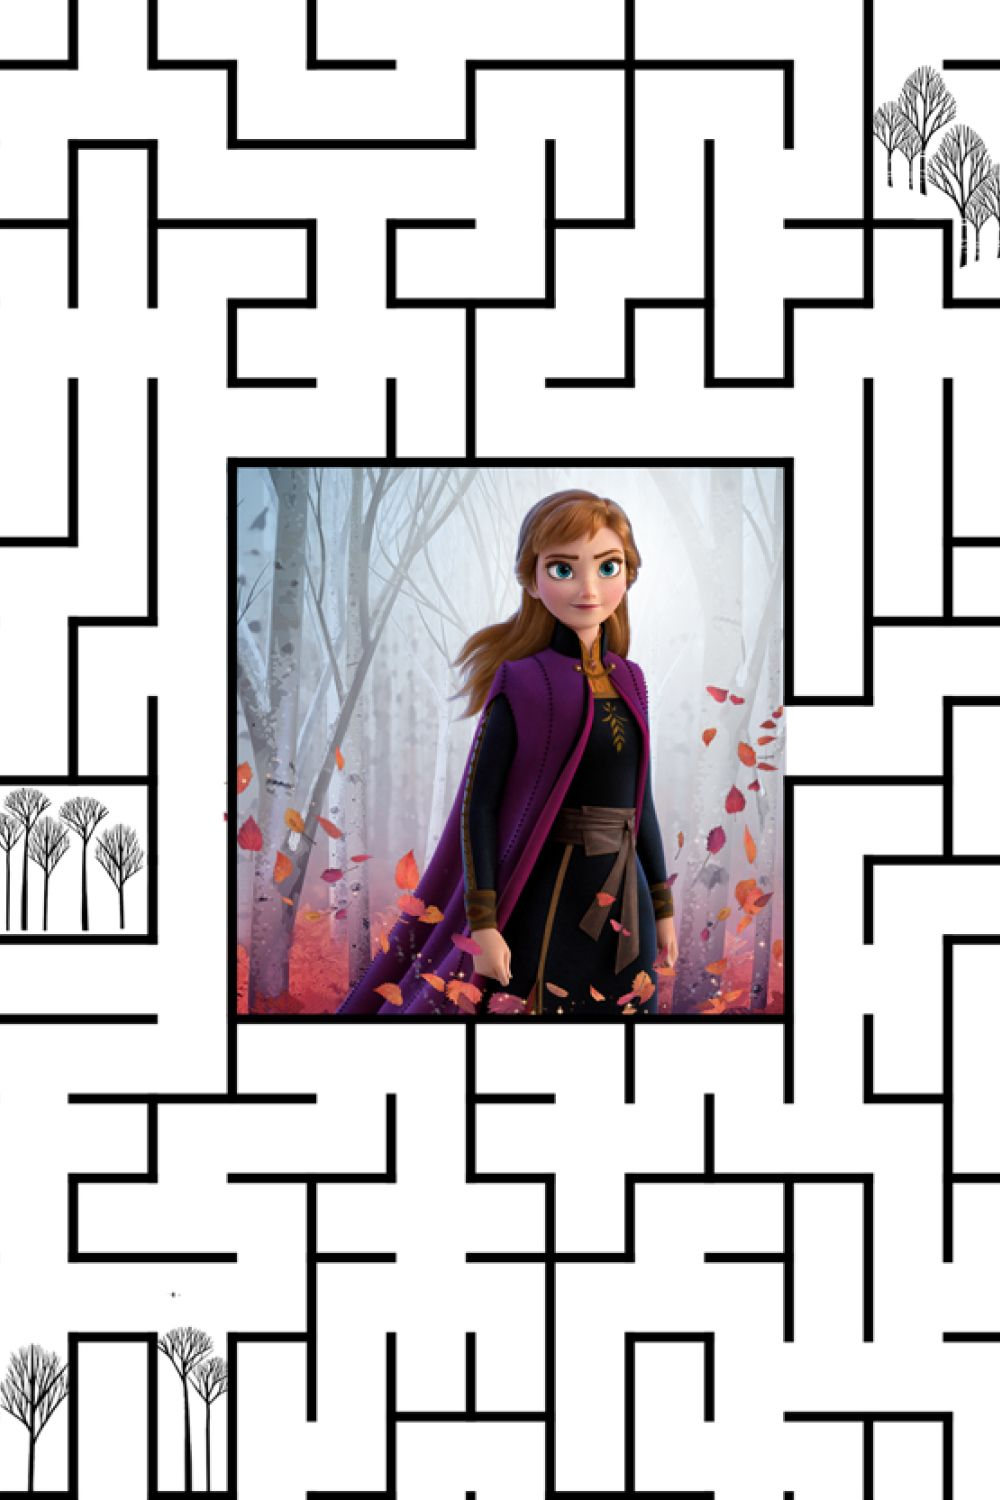 Help Kristoff And Sven Find Anna In The Enchanted Forest Tap The Pin To Download The Forest Maze Activity Sheet A Frozen Activities Activity Sheets Activities